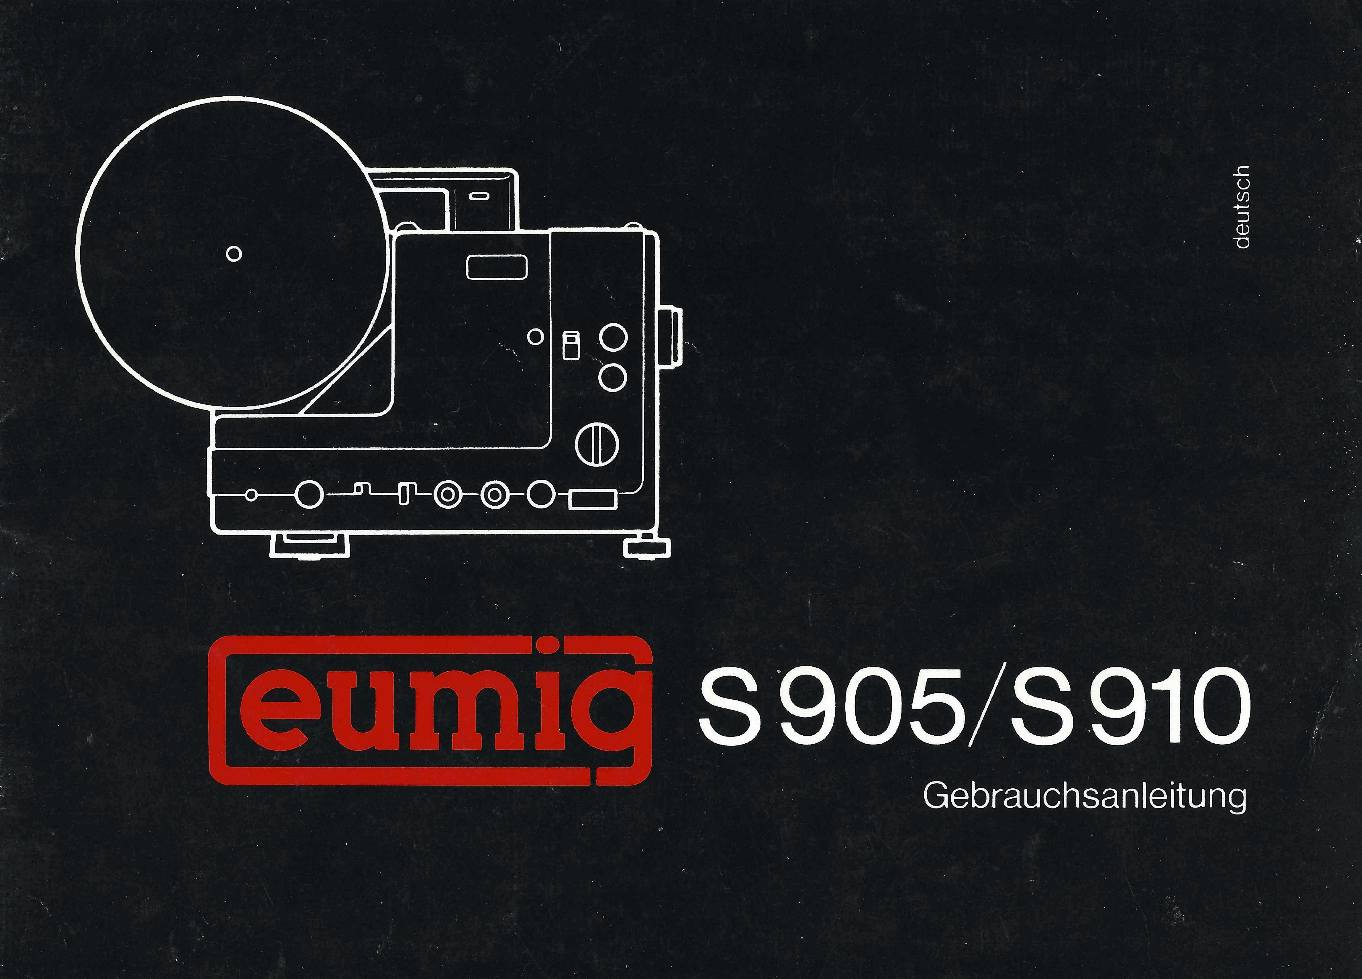 User manual Eumig S905/S910